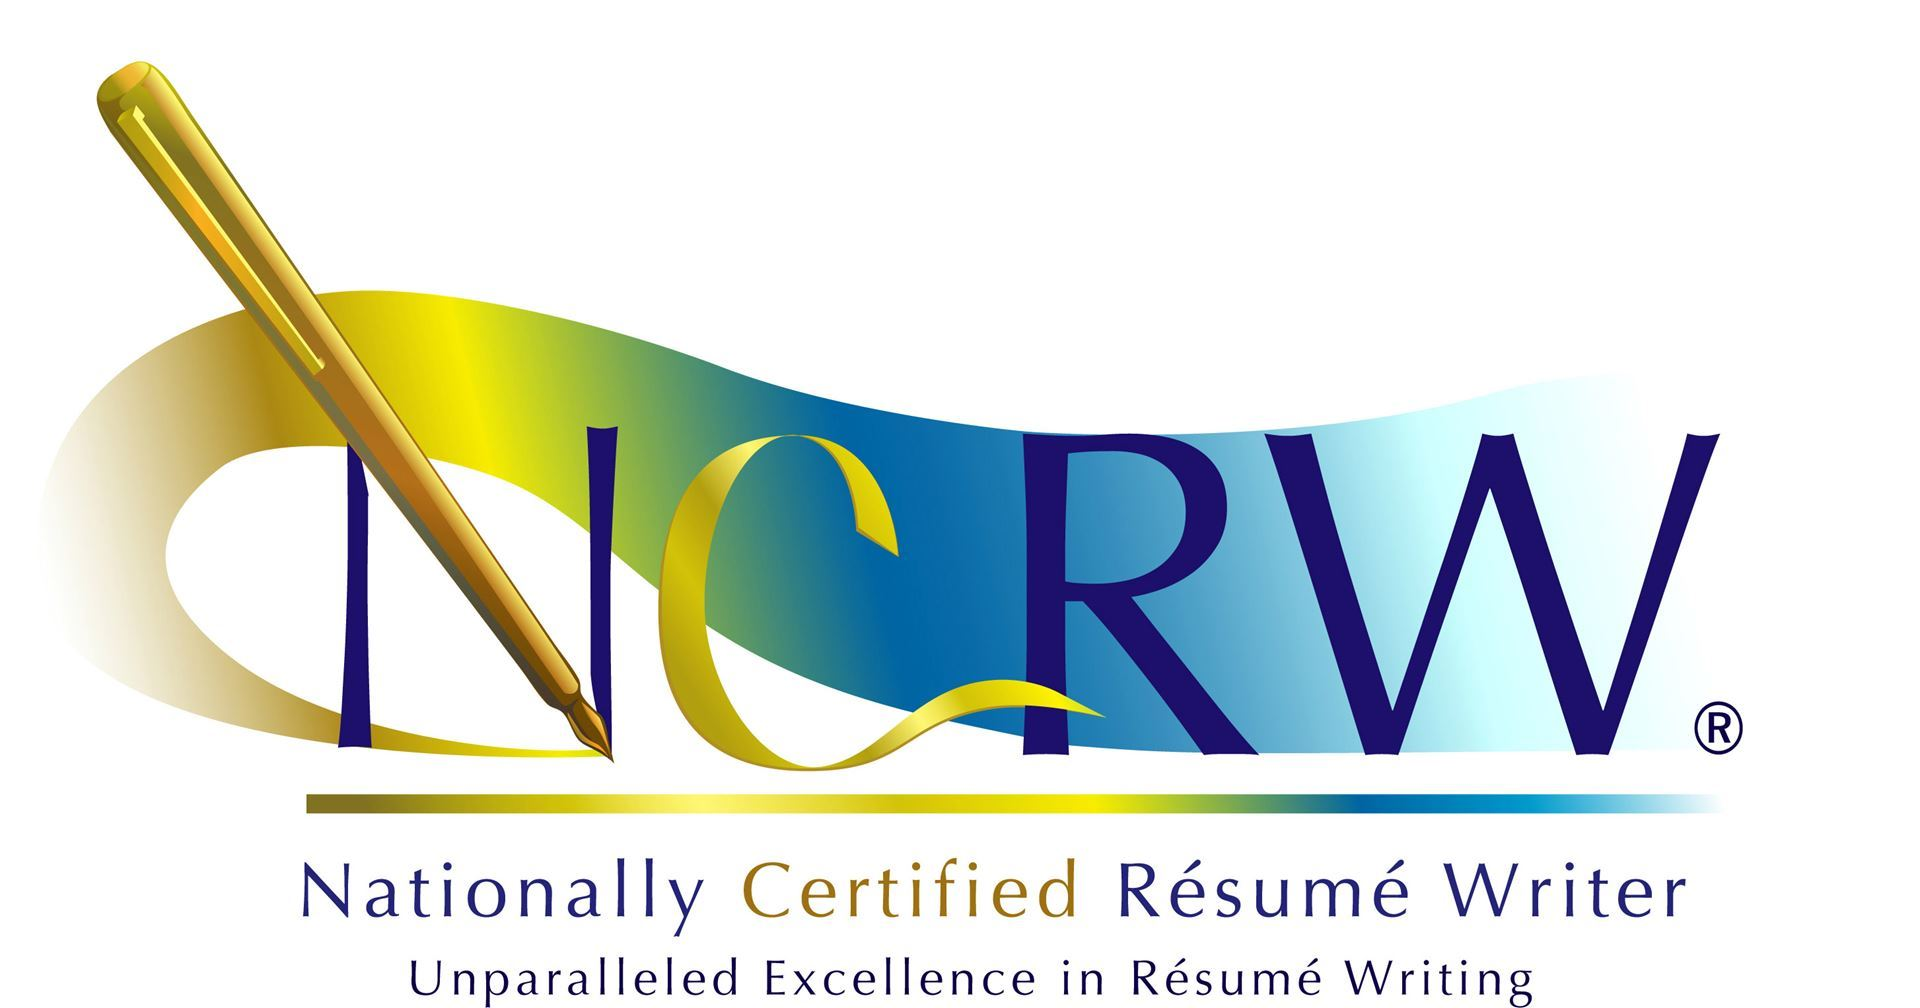 Certified Resume Writer executive resume executive resume writing service from certified executive resume writer and former recruiter Nationally Certified Resume Writers Must First Prove Their Seniority In And Commitment To The Resume Writing Industry By Presenting The Certification